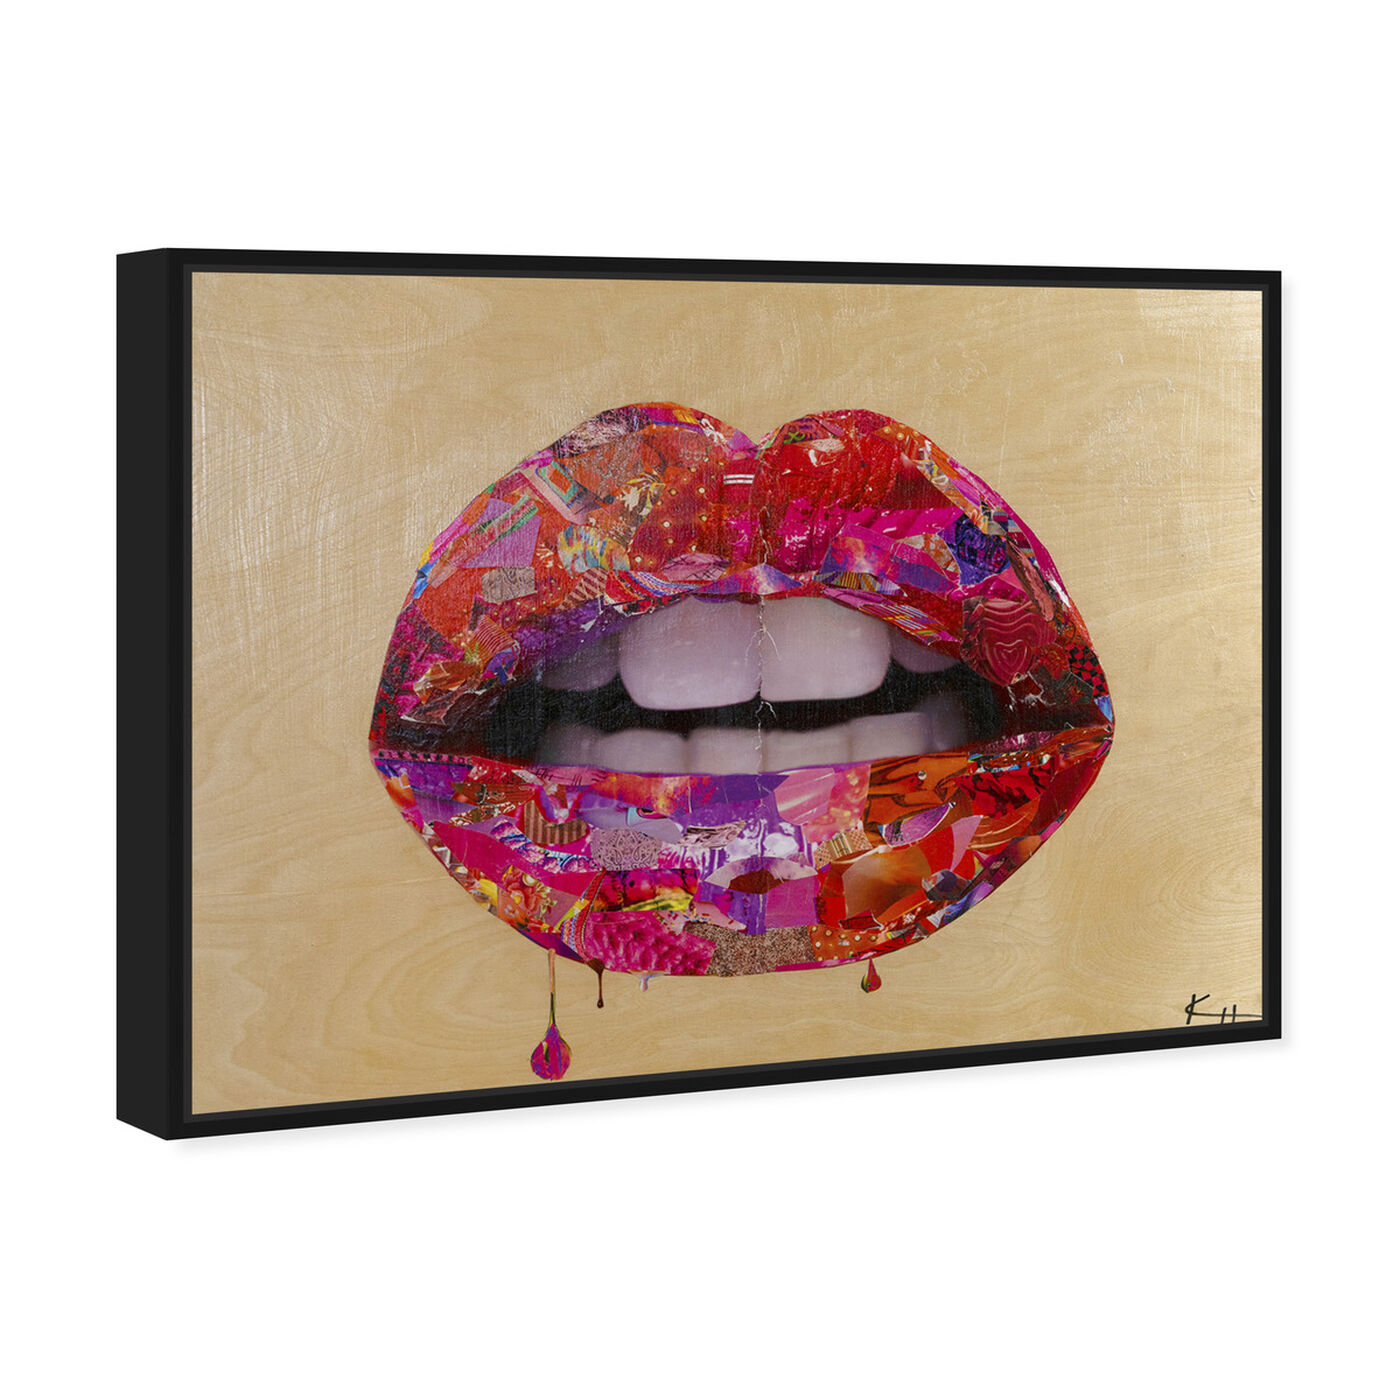 Angled view of Katy Hirschfeld - Beauty Cherry Lips featuring fashion and glam and lips art.